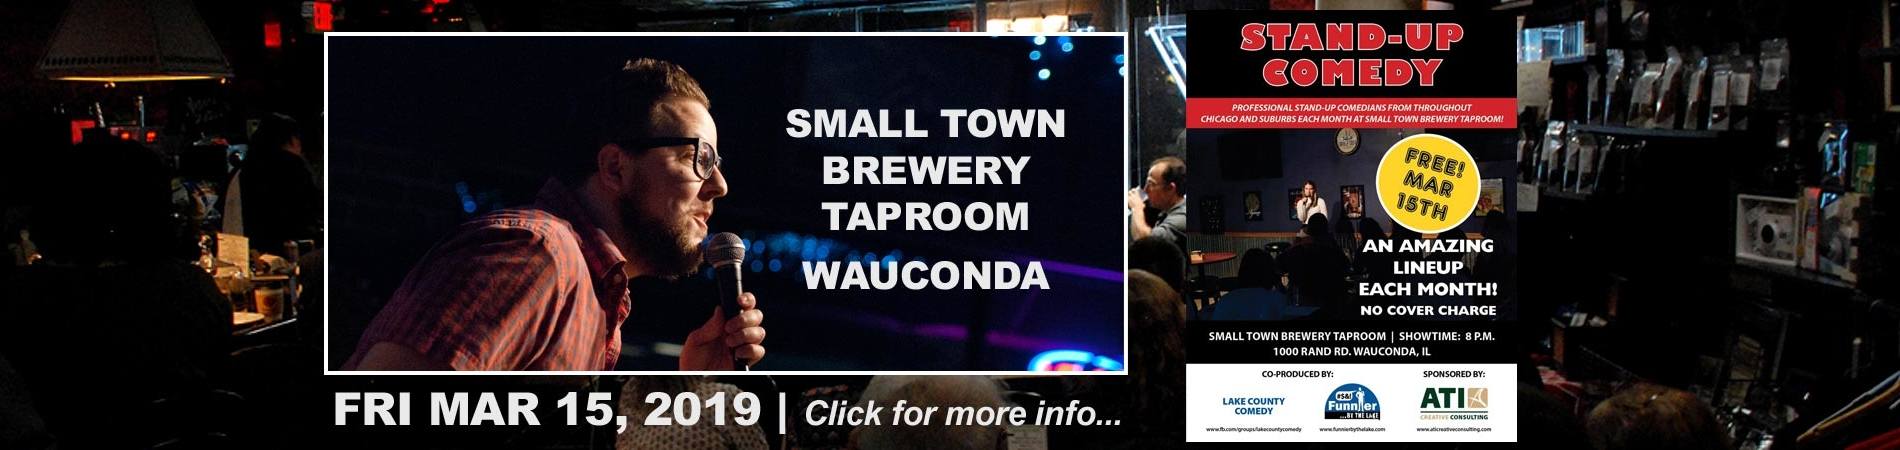 slider-smalltownbrewery-03-2019